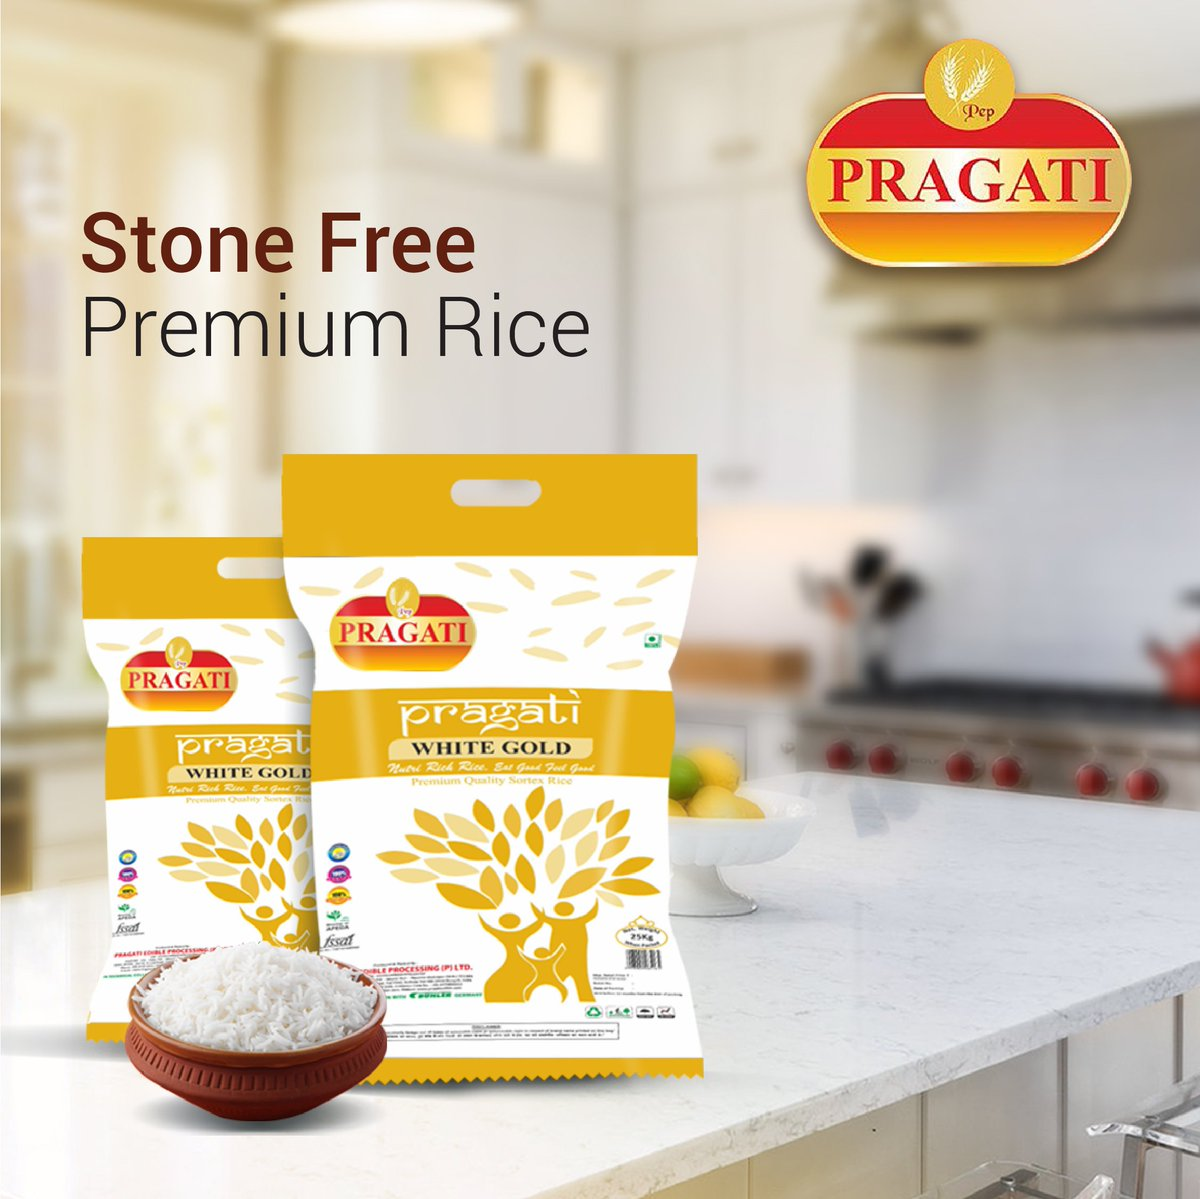 Pragati Rice is processed with care and cleanliness. Explore the exclusive variants of stone-free Pragati Rice only for you!  #Love #Care #Food #Rice #PragatiRice